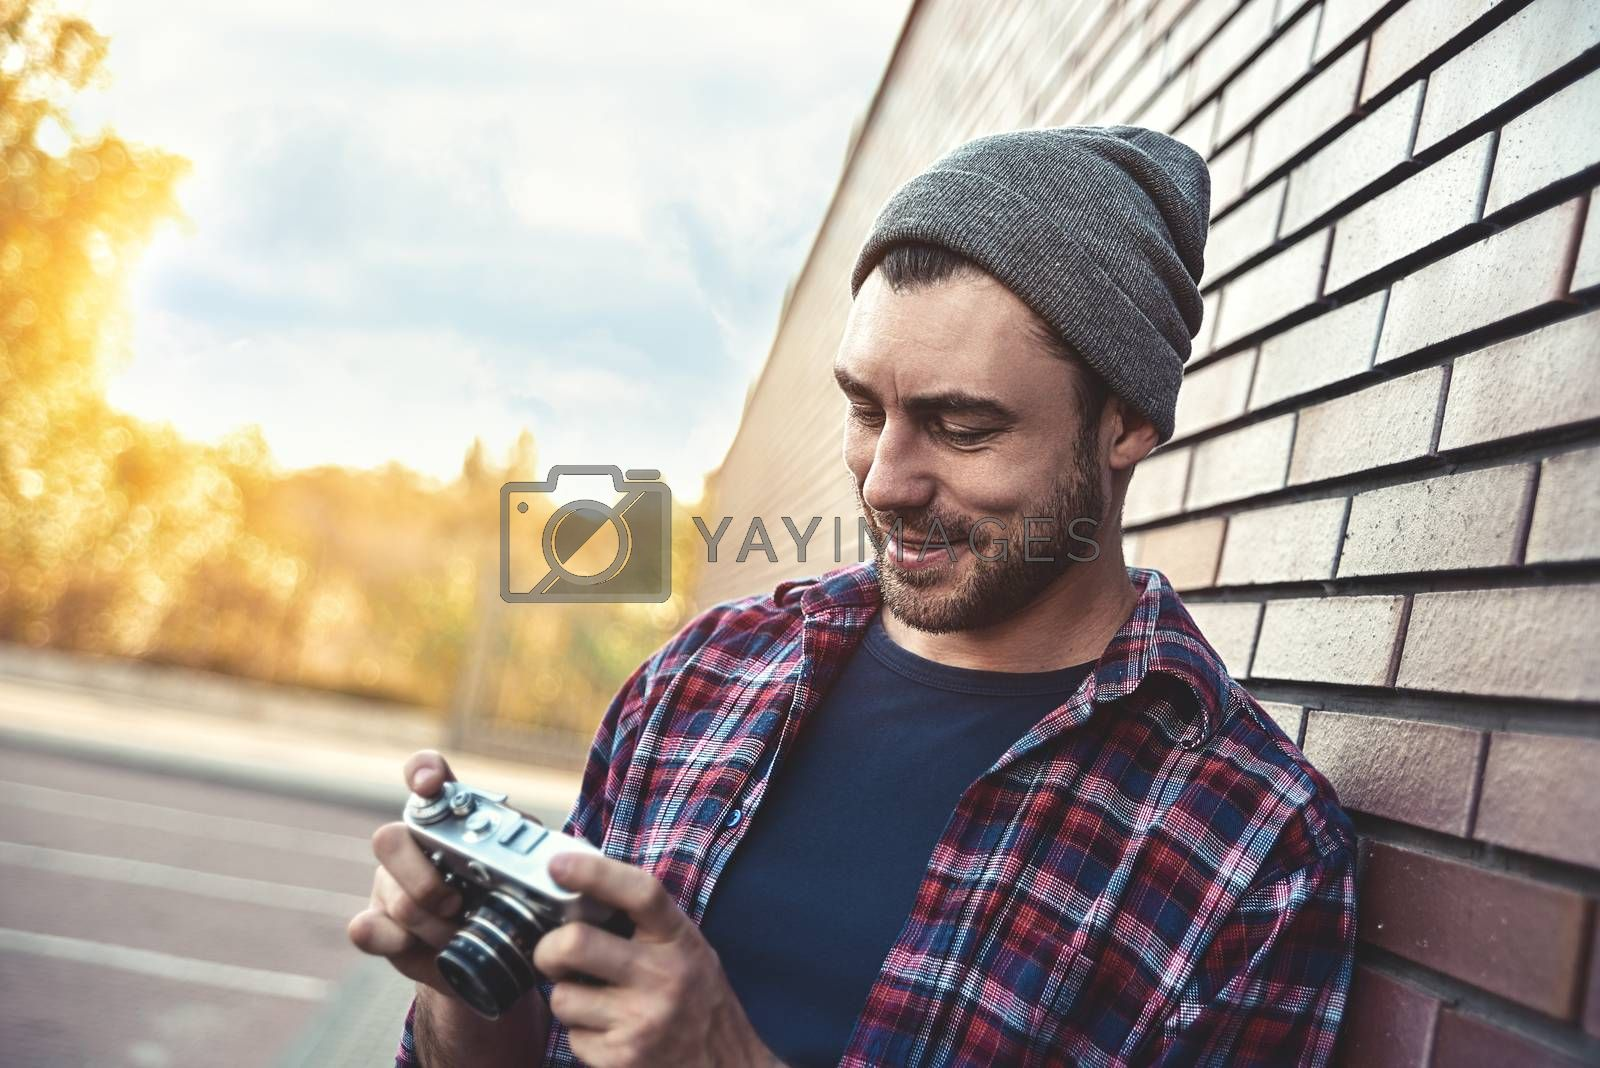 Smiling man with retro photo camera Fashion Travel Lifestyle outdoor while standing against brick wall background